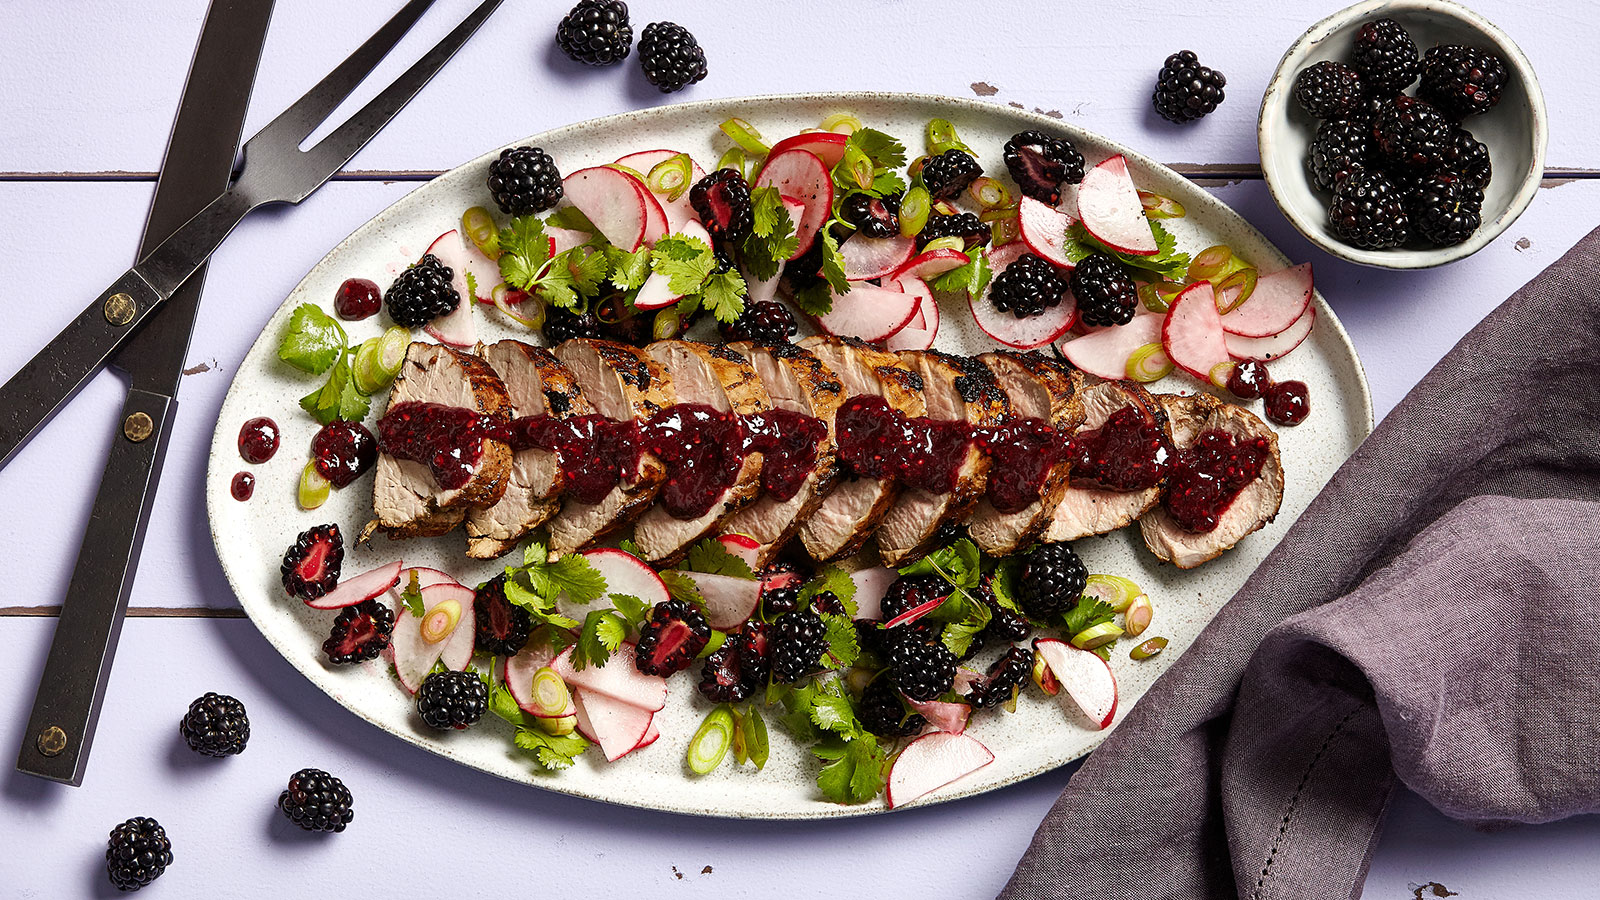 Spicy Blackberry Pork Tenderloin with Blackberry Salsa